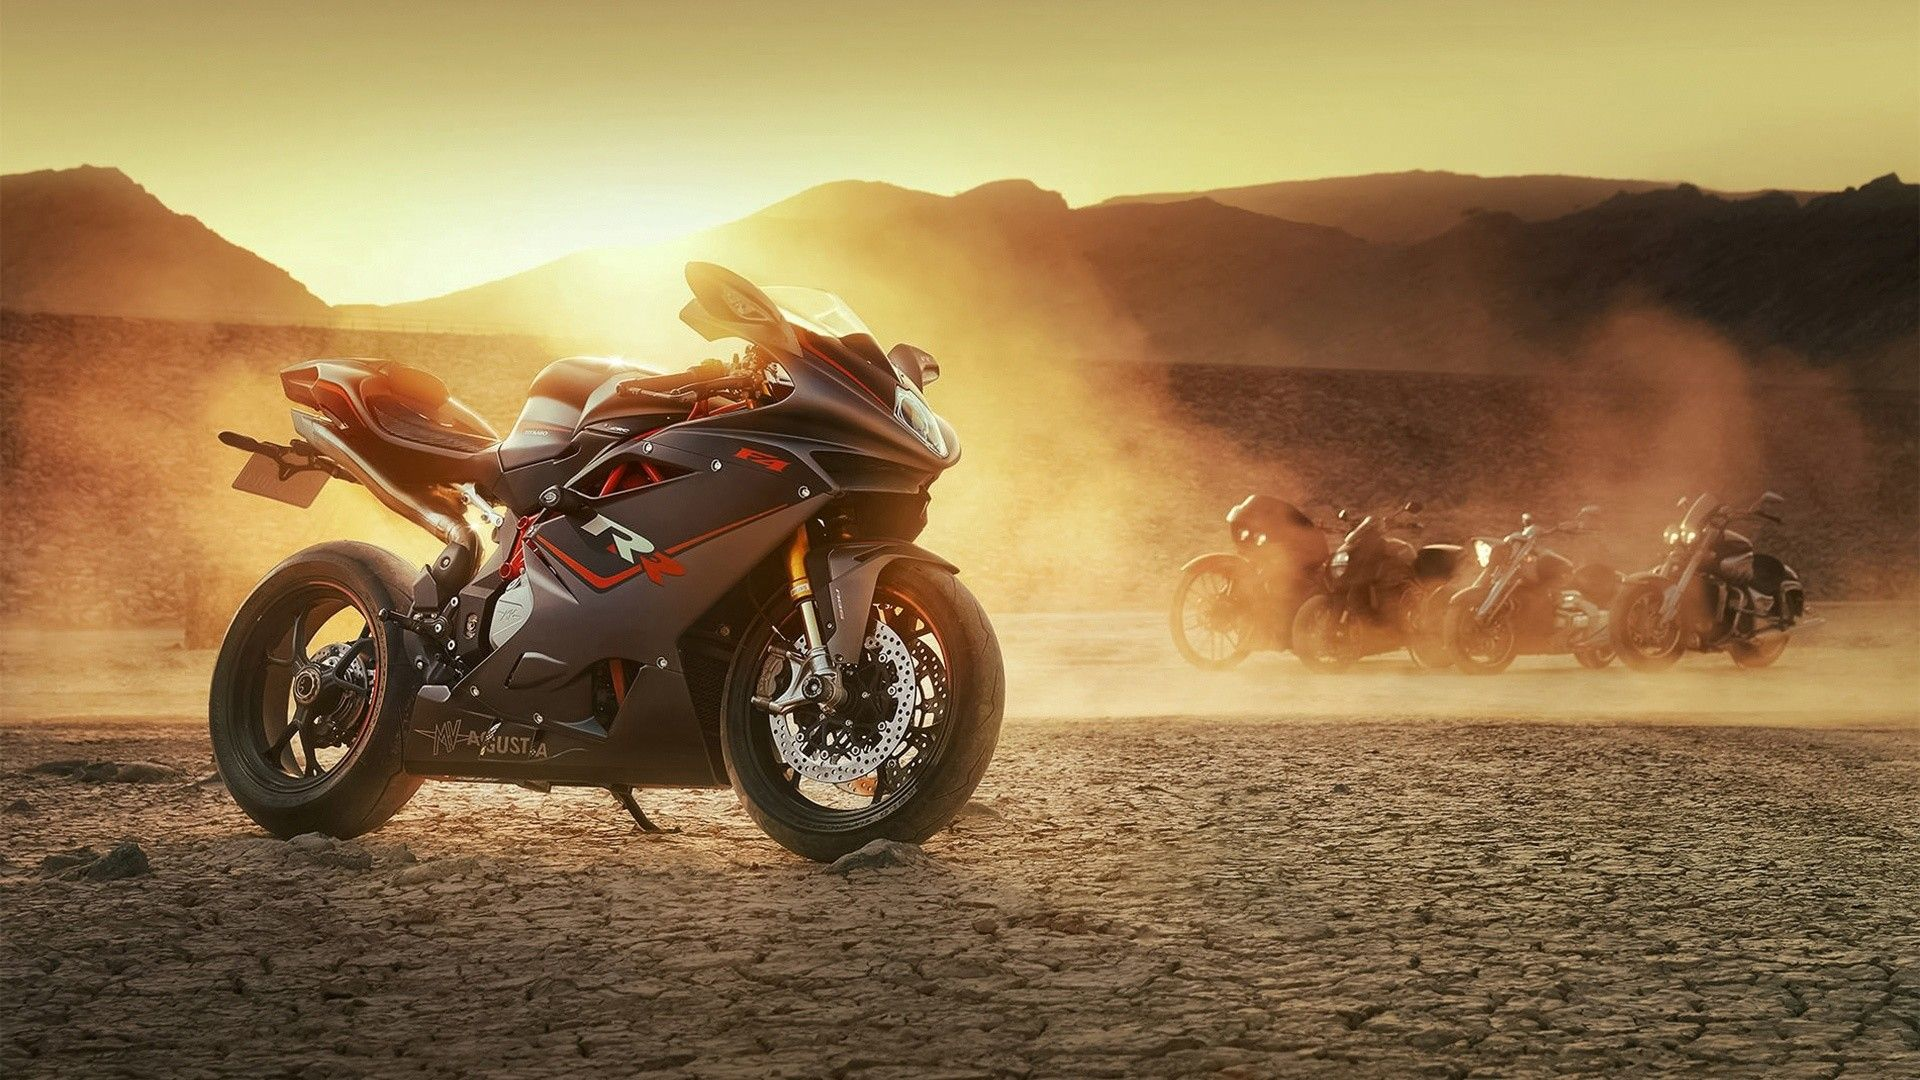 Free Mv Agusta F4 Rr Bike Phone Wallpaper By Glorianichole With